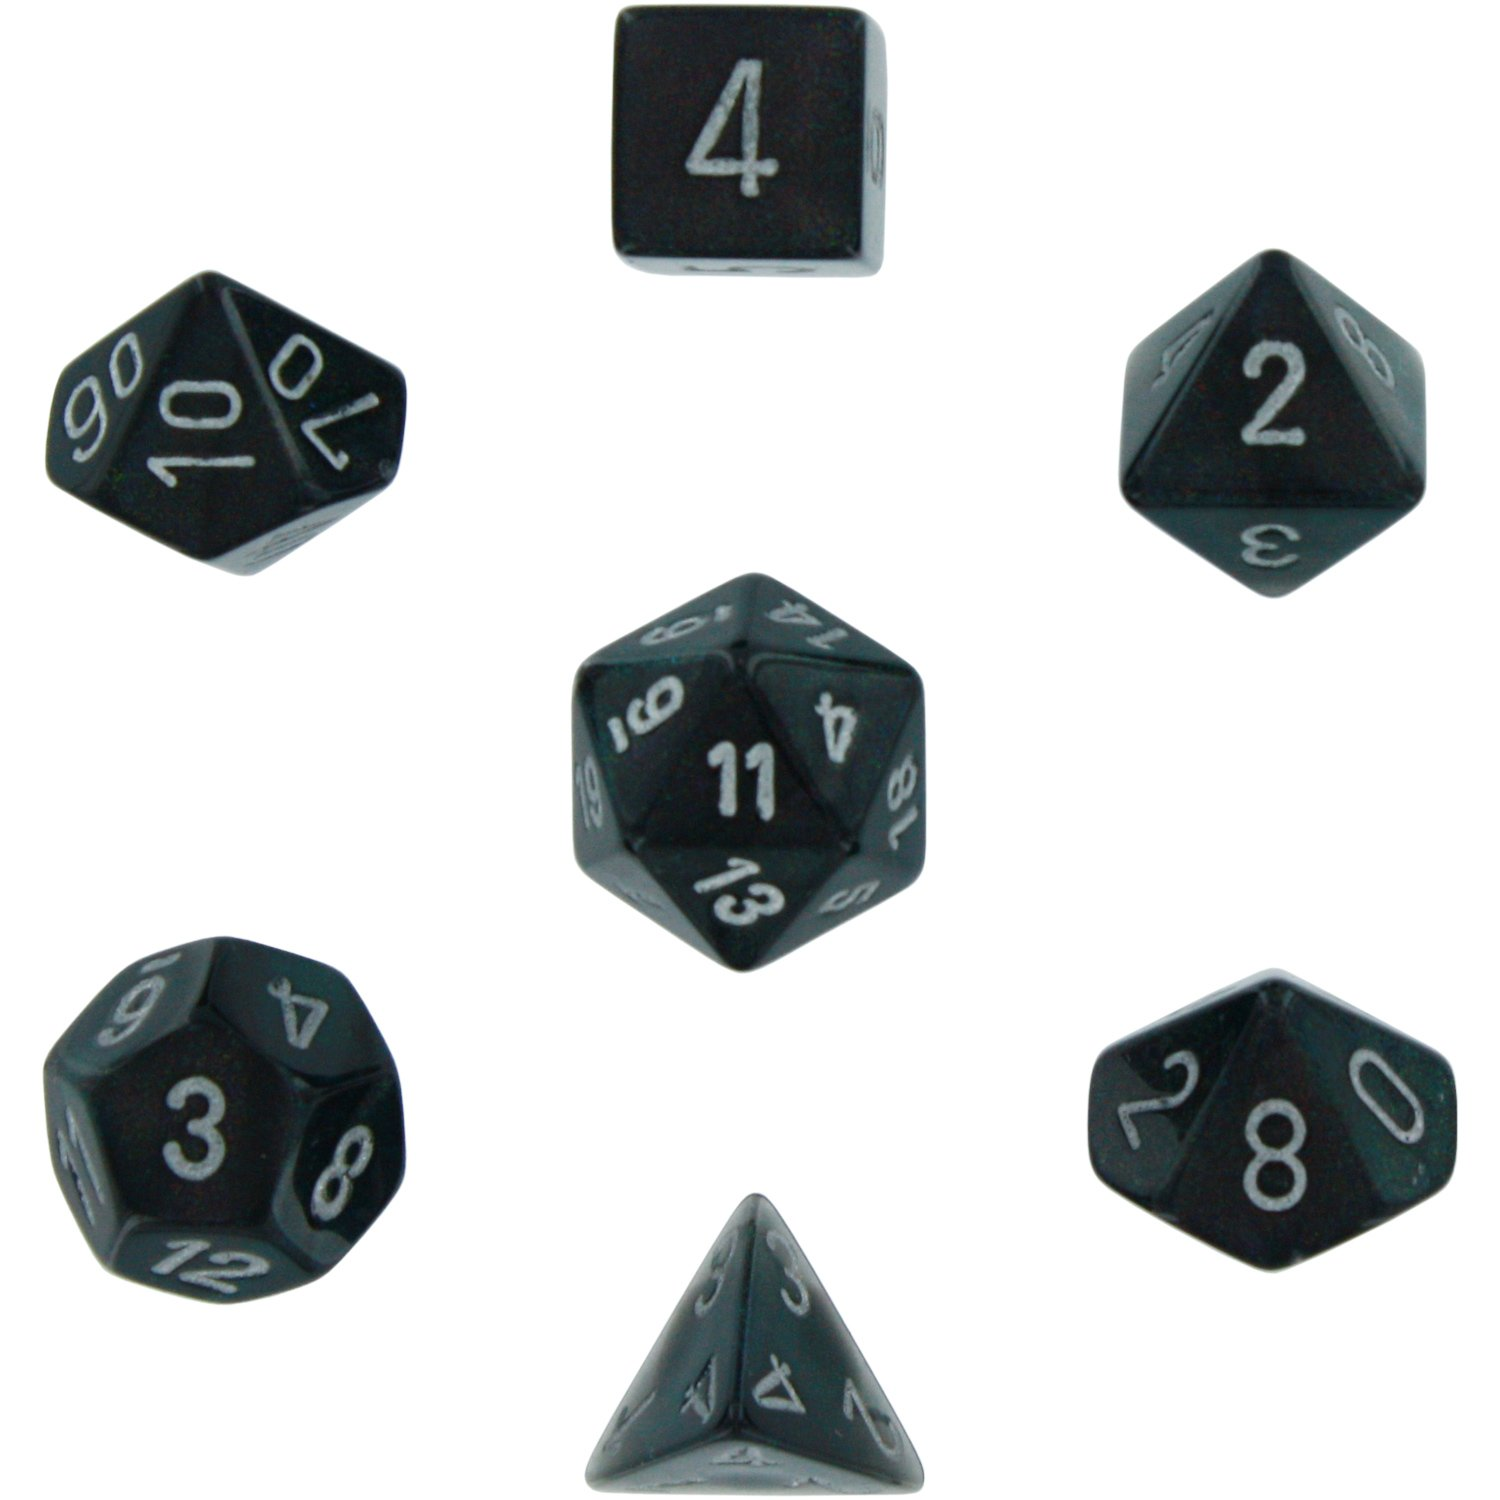 Chessex Dice: Polyhedral 7-Die Borealis Dice Set - Smoke with Silver numbers CHX-27428